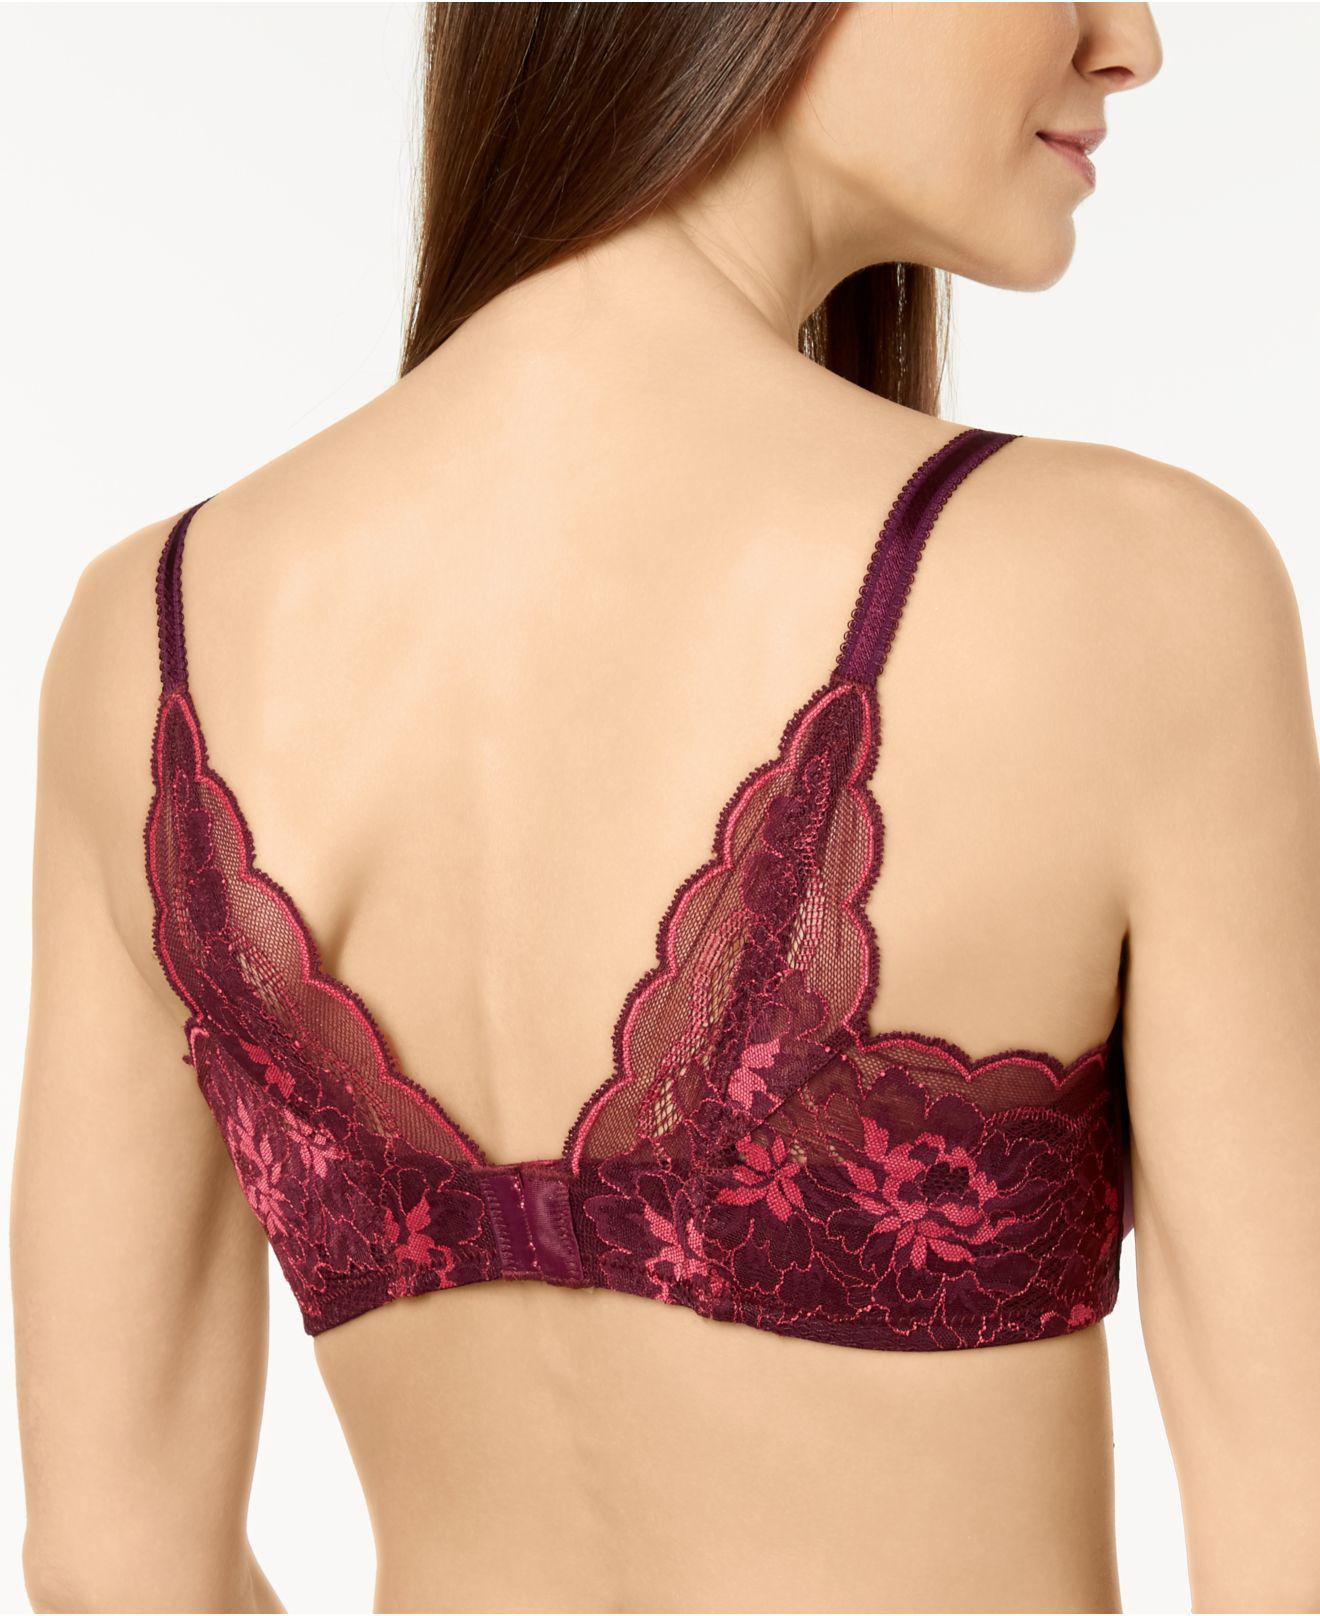 c12dabd2a3 Lyst - Wacoal Fire And Lace Contour Bra 853252 in Purple - Save 44%